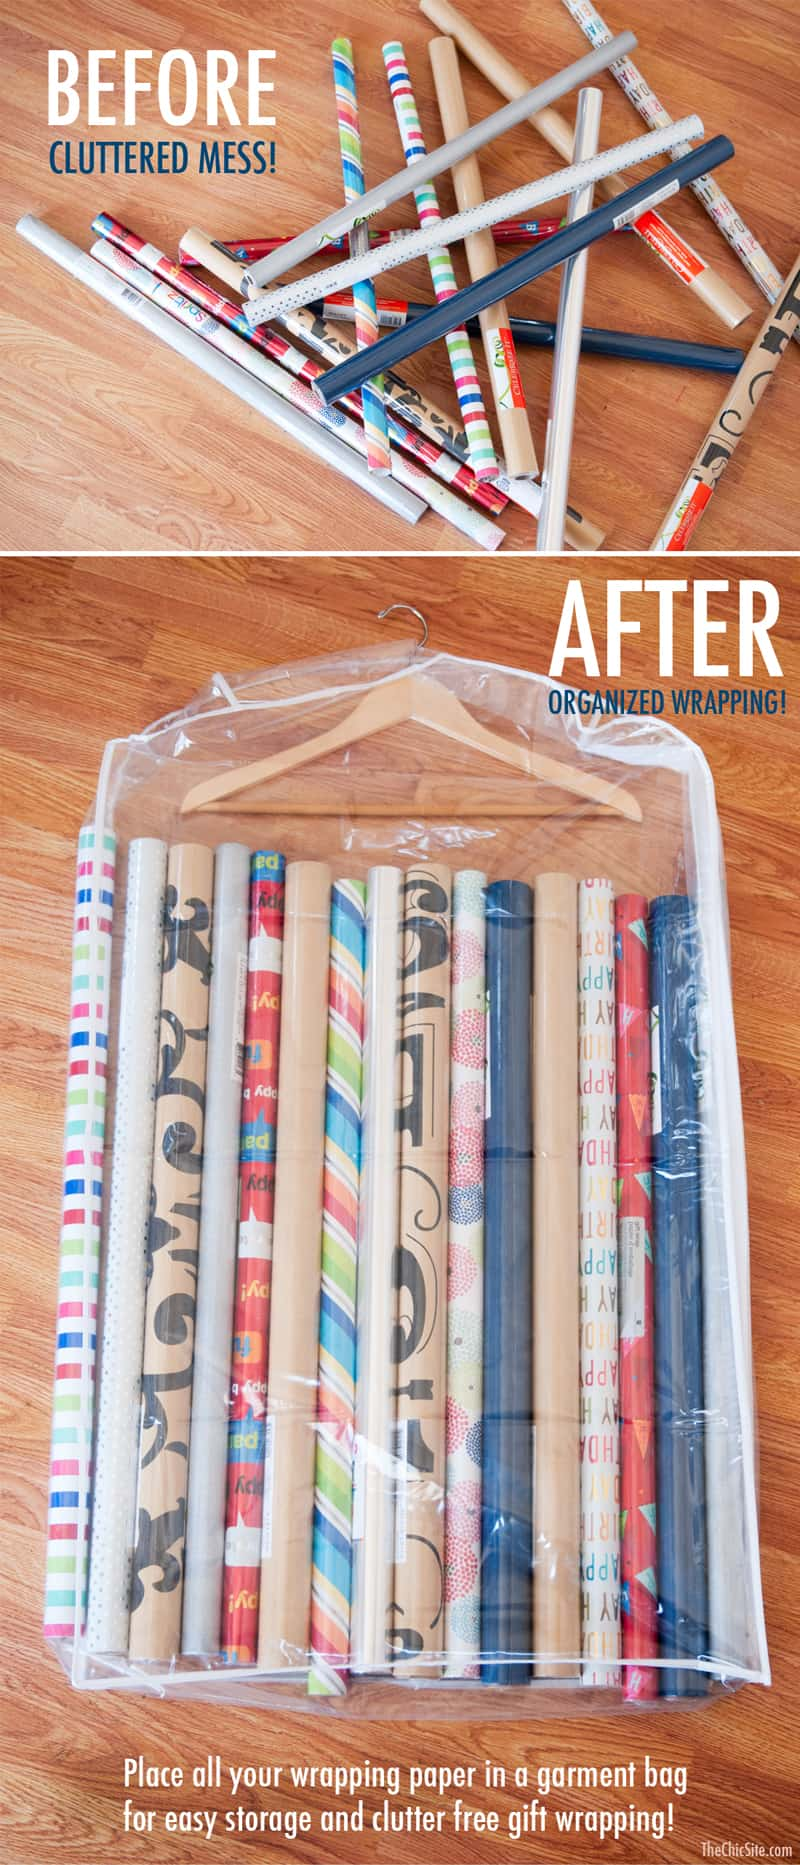 Wrapping-Paper-Garment-Bag